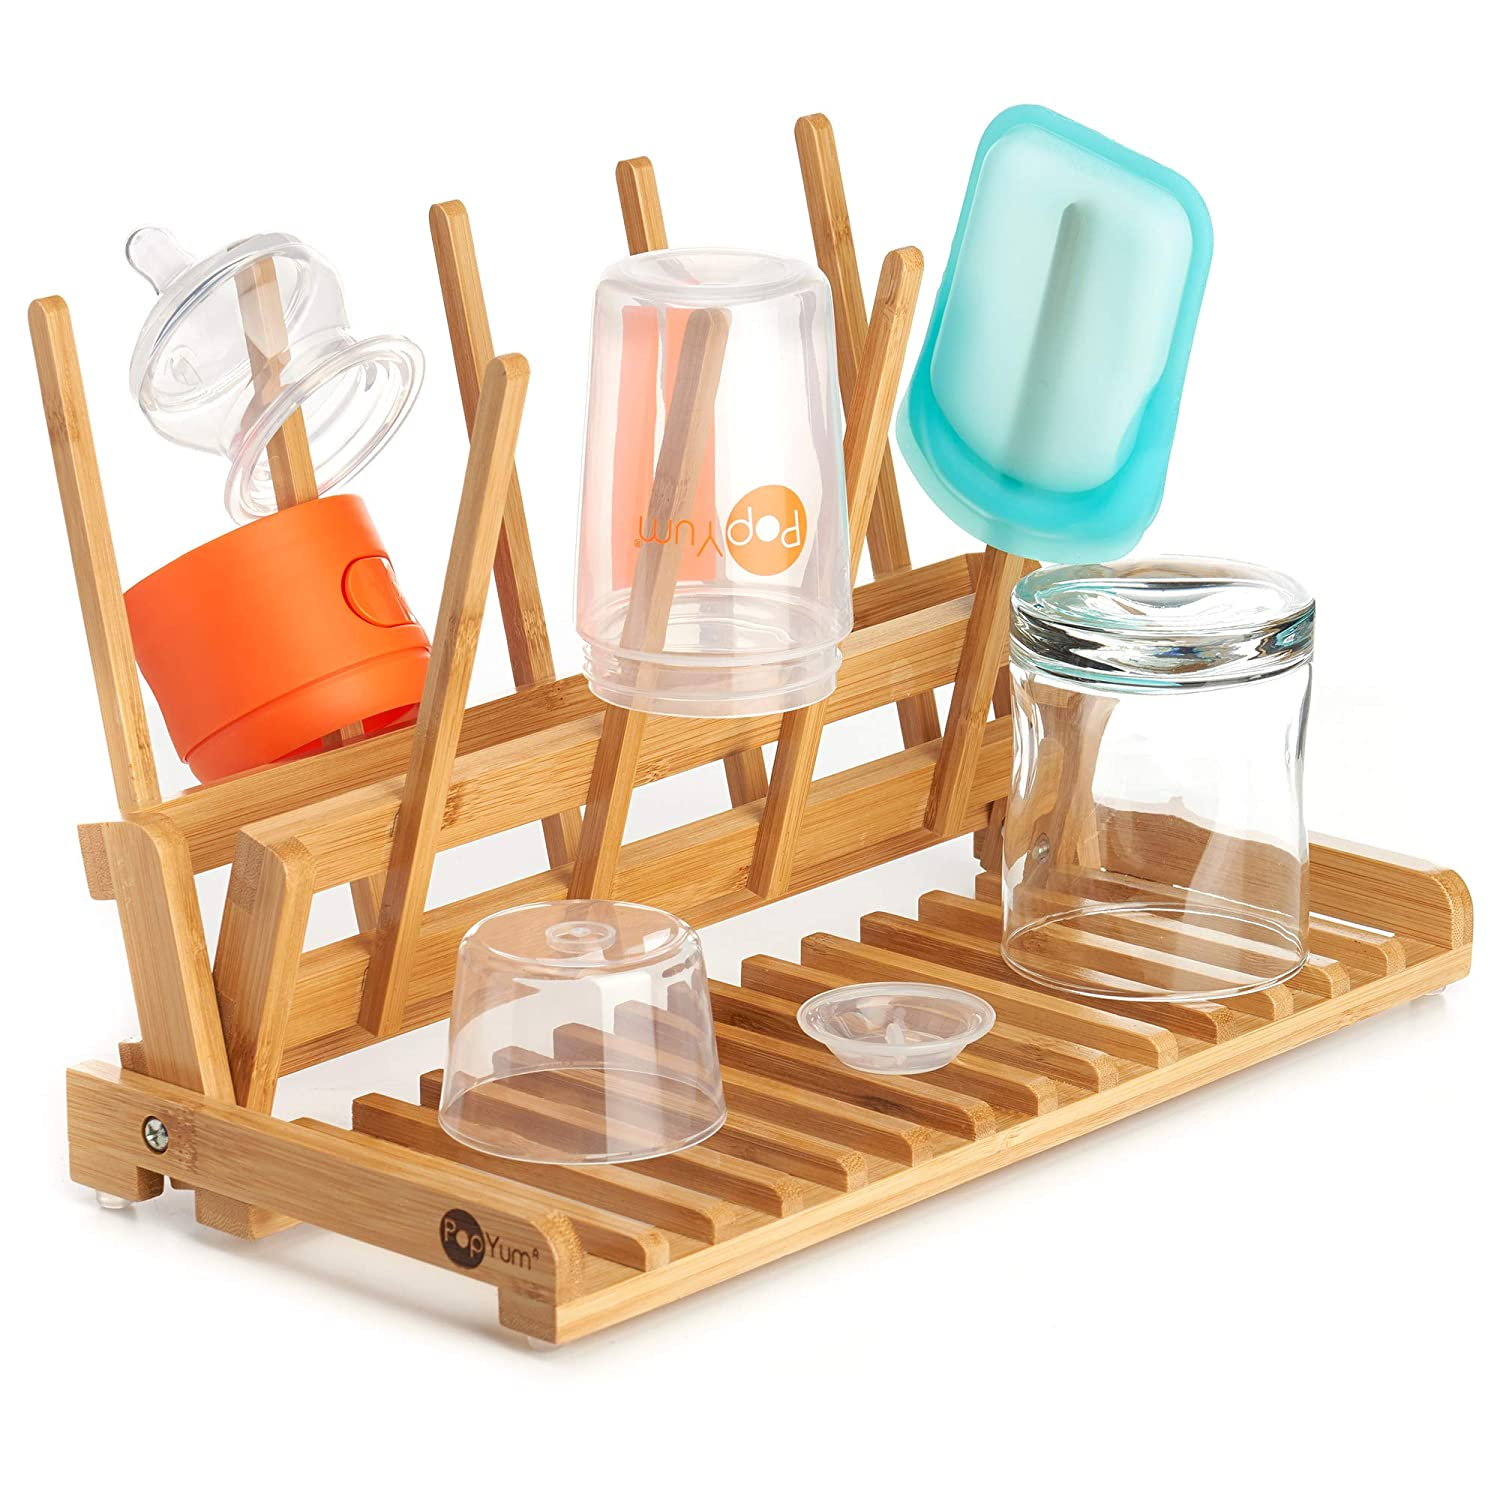 PopYum Space Saving Bamboo Drying Rack, Countertop Wood Folding Collapsible for Baby Bottle, Plastic Bag, Cup, Glass, Silicone, Water Bottle, Wooden, FSC Certified, Compact